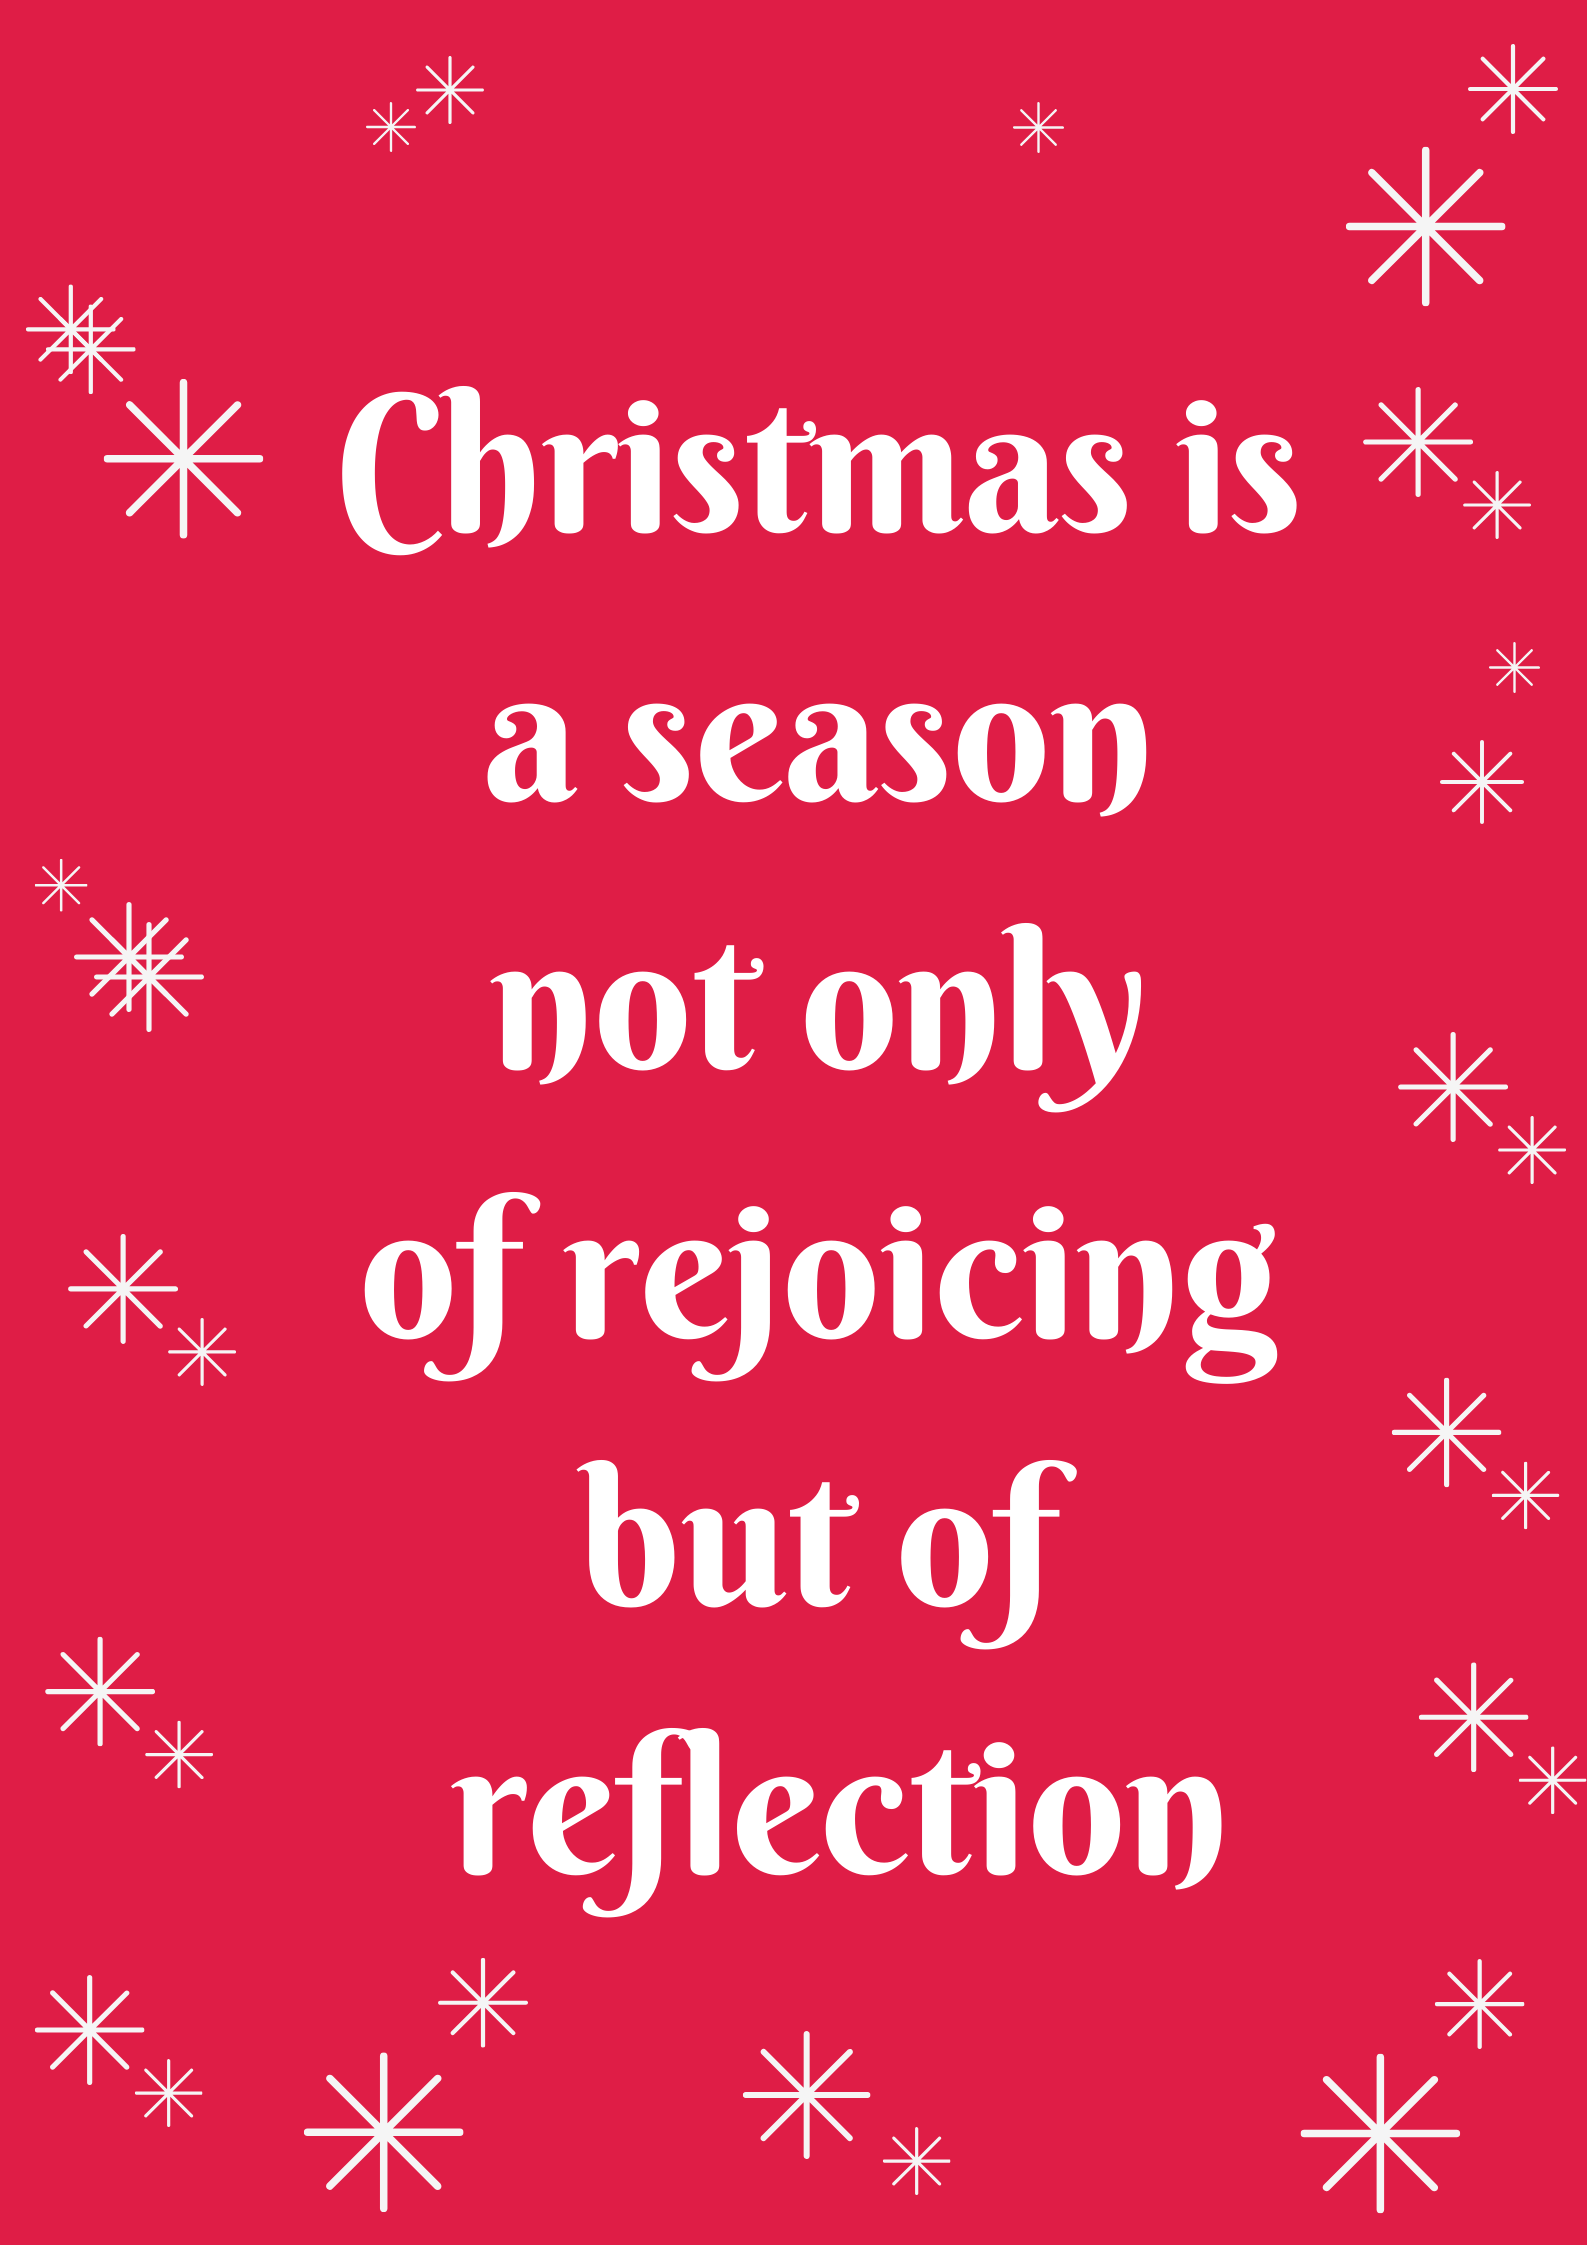 Christmas is a season not only of rejoicing but of